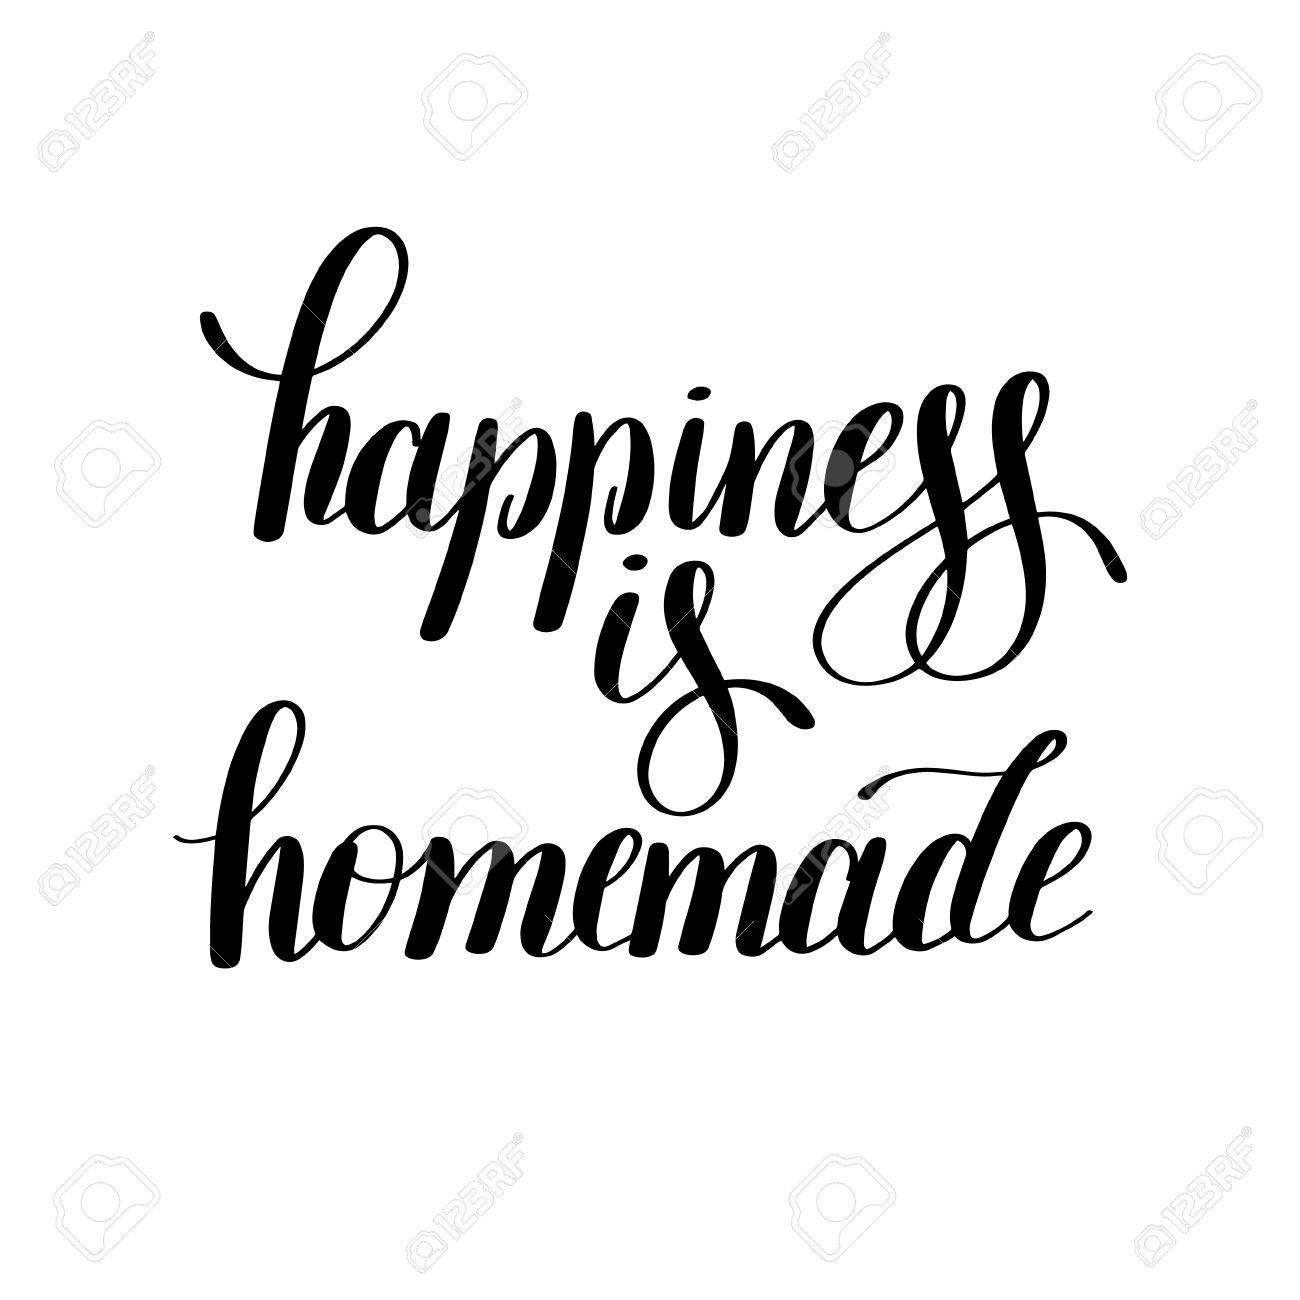 image regarding Happiness is Homemade identified as contentment is do-it-yourself handwritten guaranteed inspirational estimate..